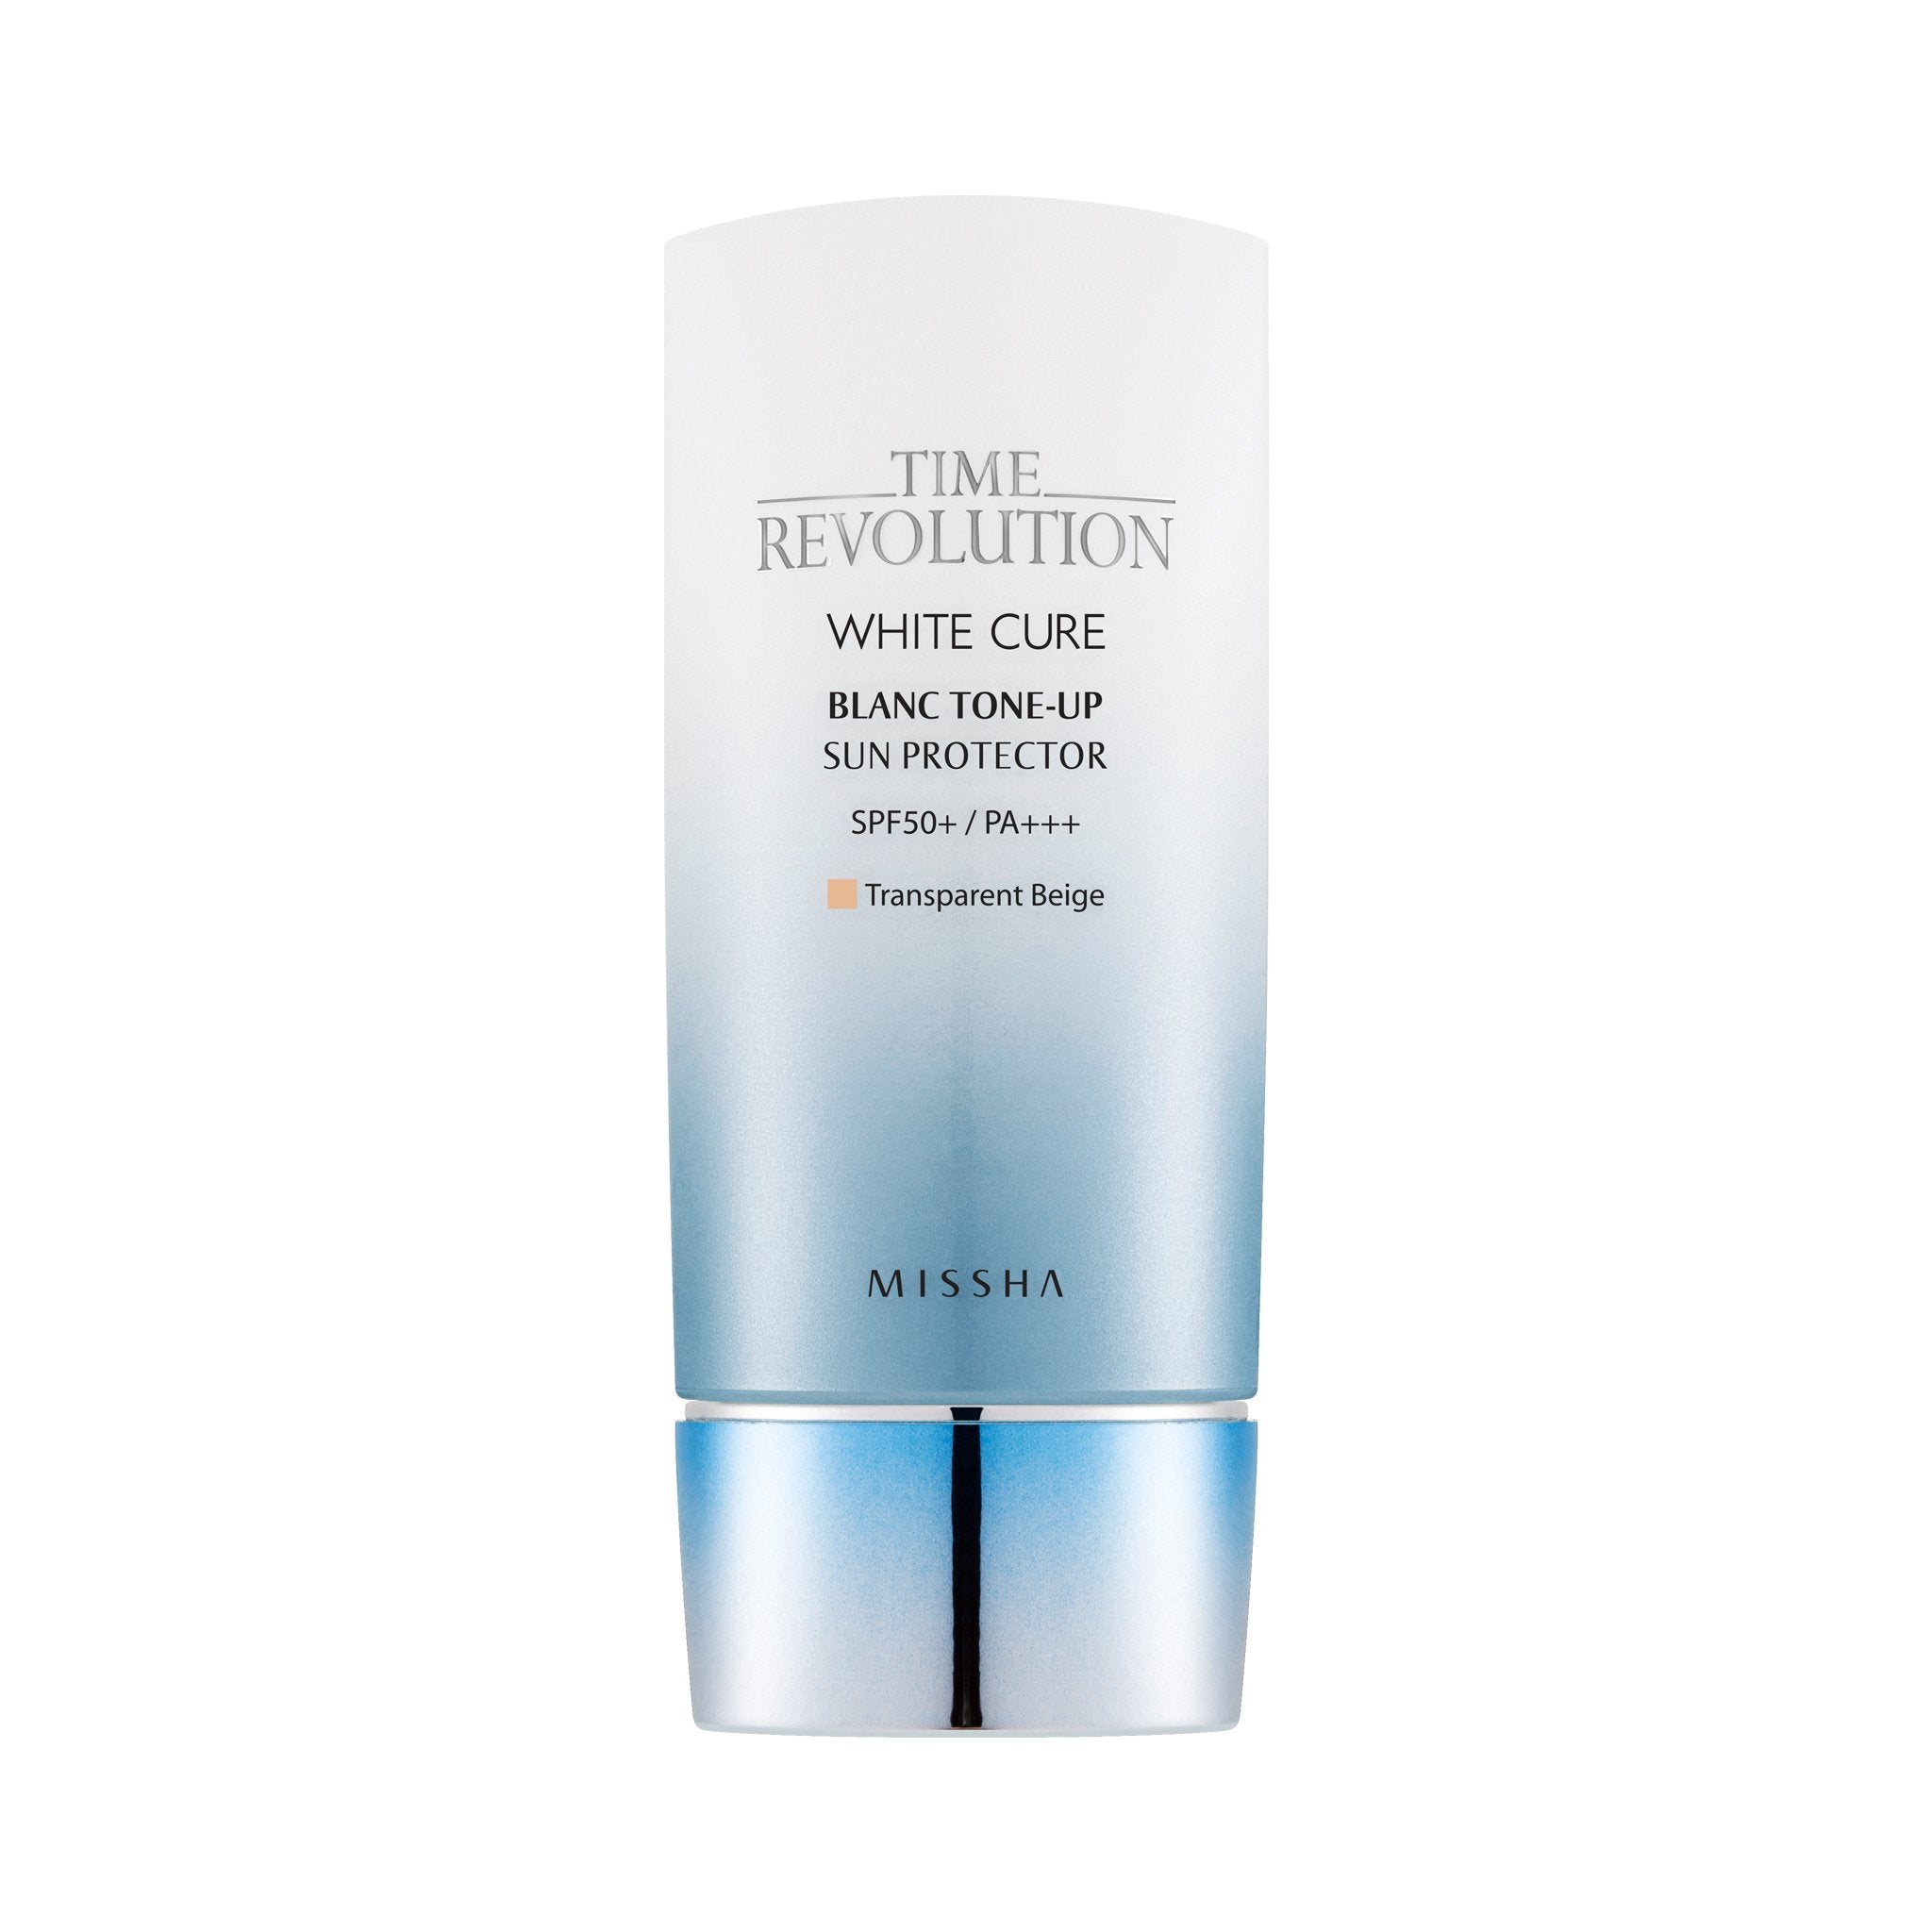 TIME REVOLUTION WHITE CURE BLANC TONE-UP SUN PROTECTOR SPF50+/PA+++ - MISSHA